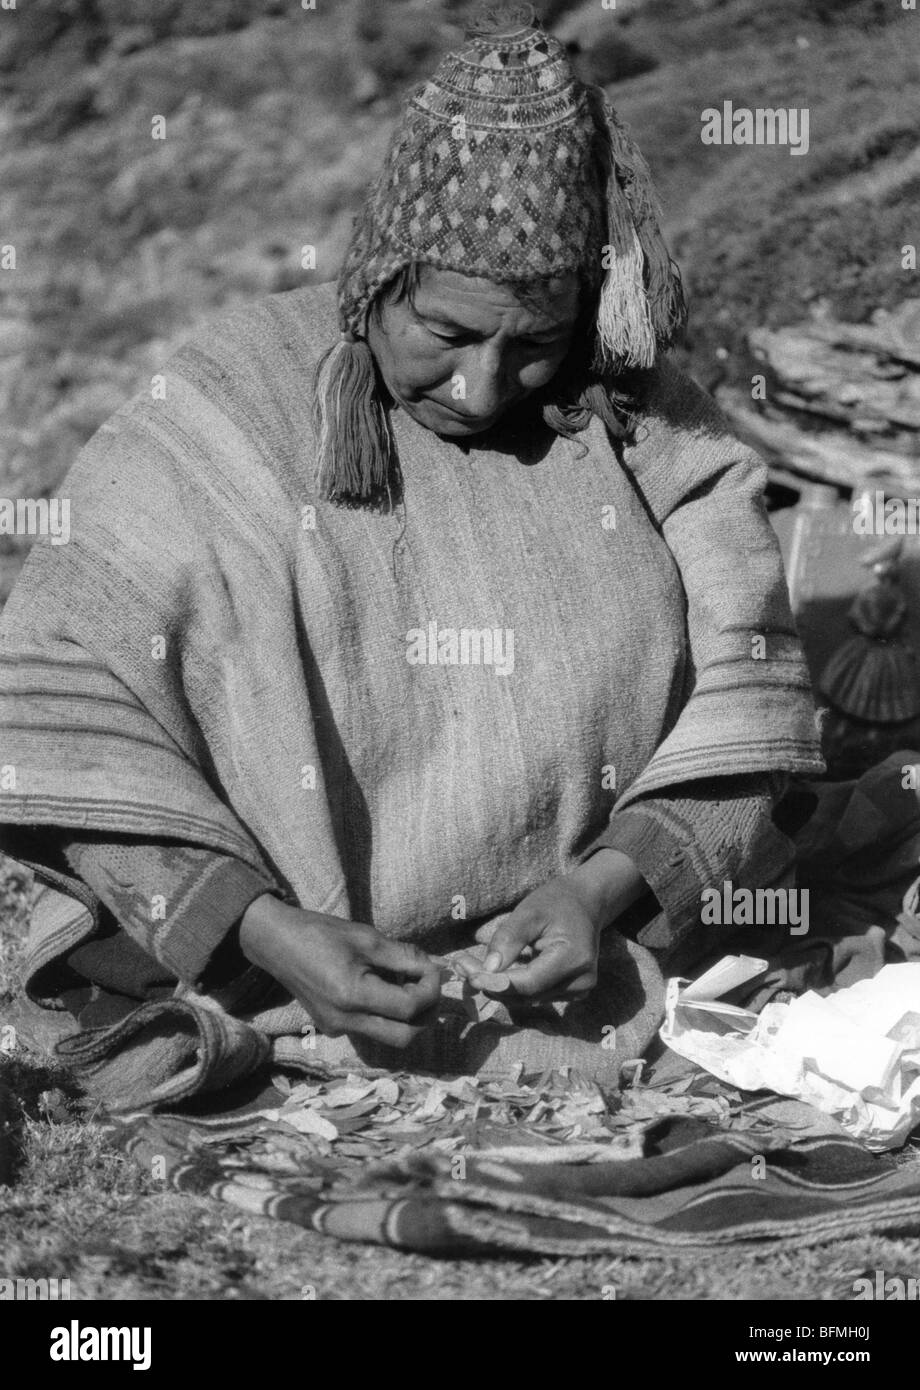 Qeros Native Quechua Indians using coca leaves to forecast the future. - Stock Image